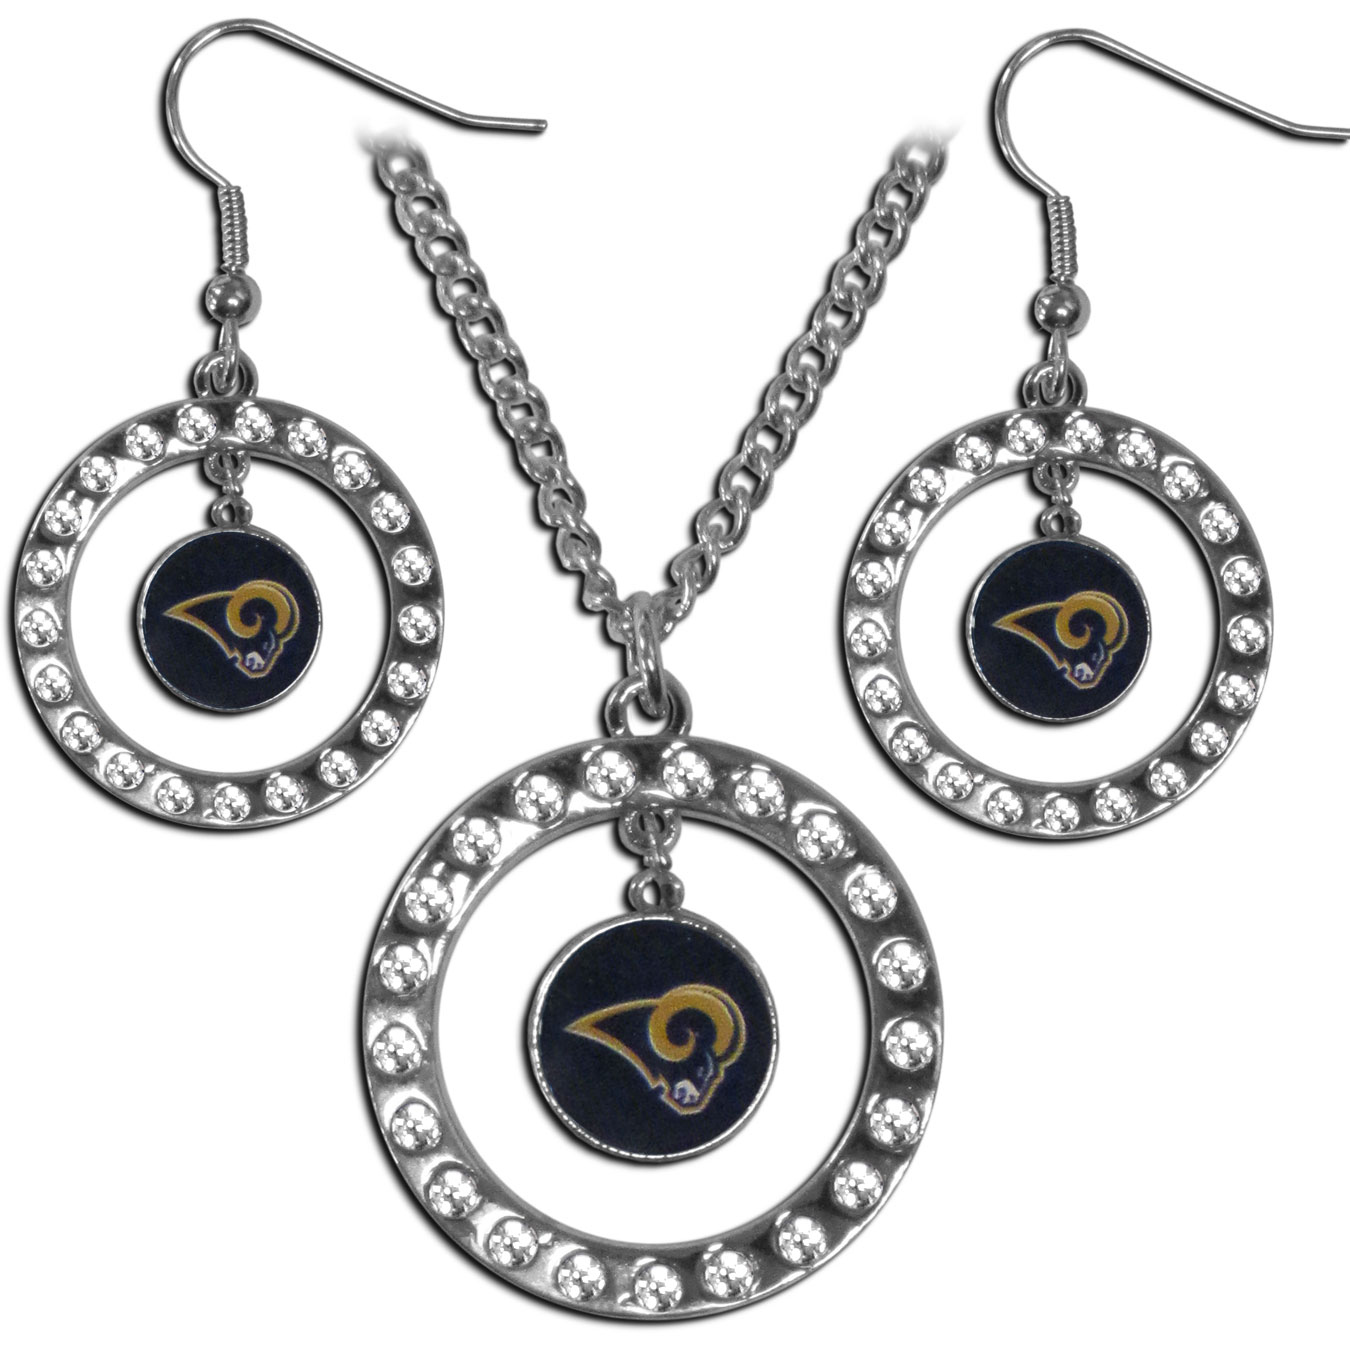 St. Louis Rams Rhinestone Hoop Jewelry Set - This officially licensed St. Louis Rams jewelry set includes our rhinestone hoop earrings and pendant in a gift box. The 1 inch rhinestone hoop pendant comes on an 18 inch chain and is paired with the matching dangle hoop earrings.